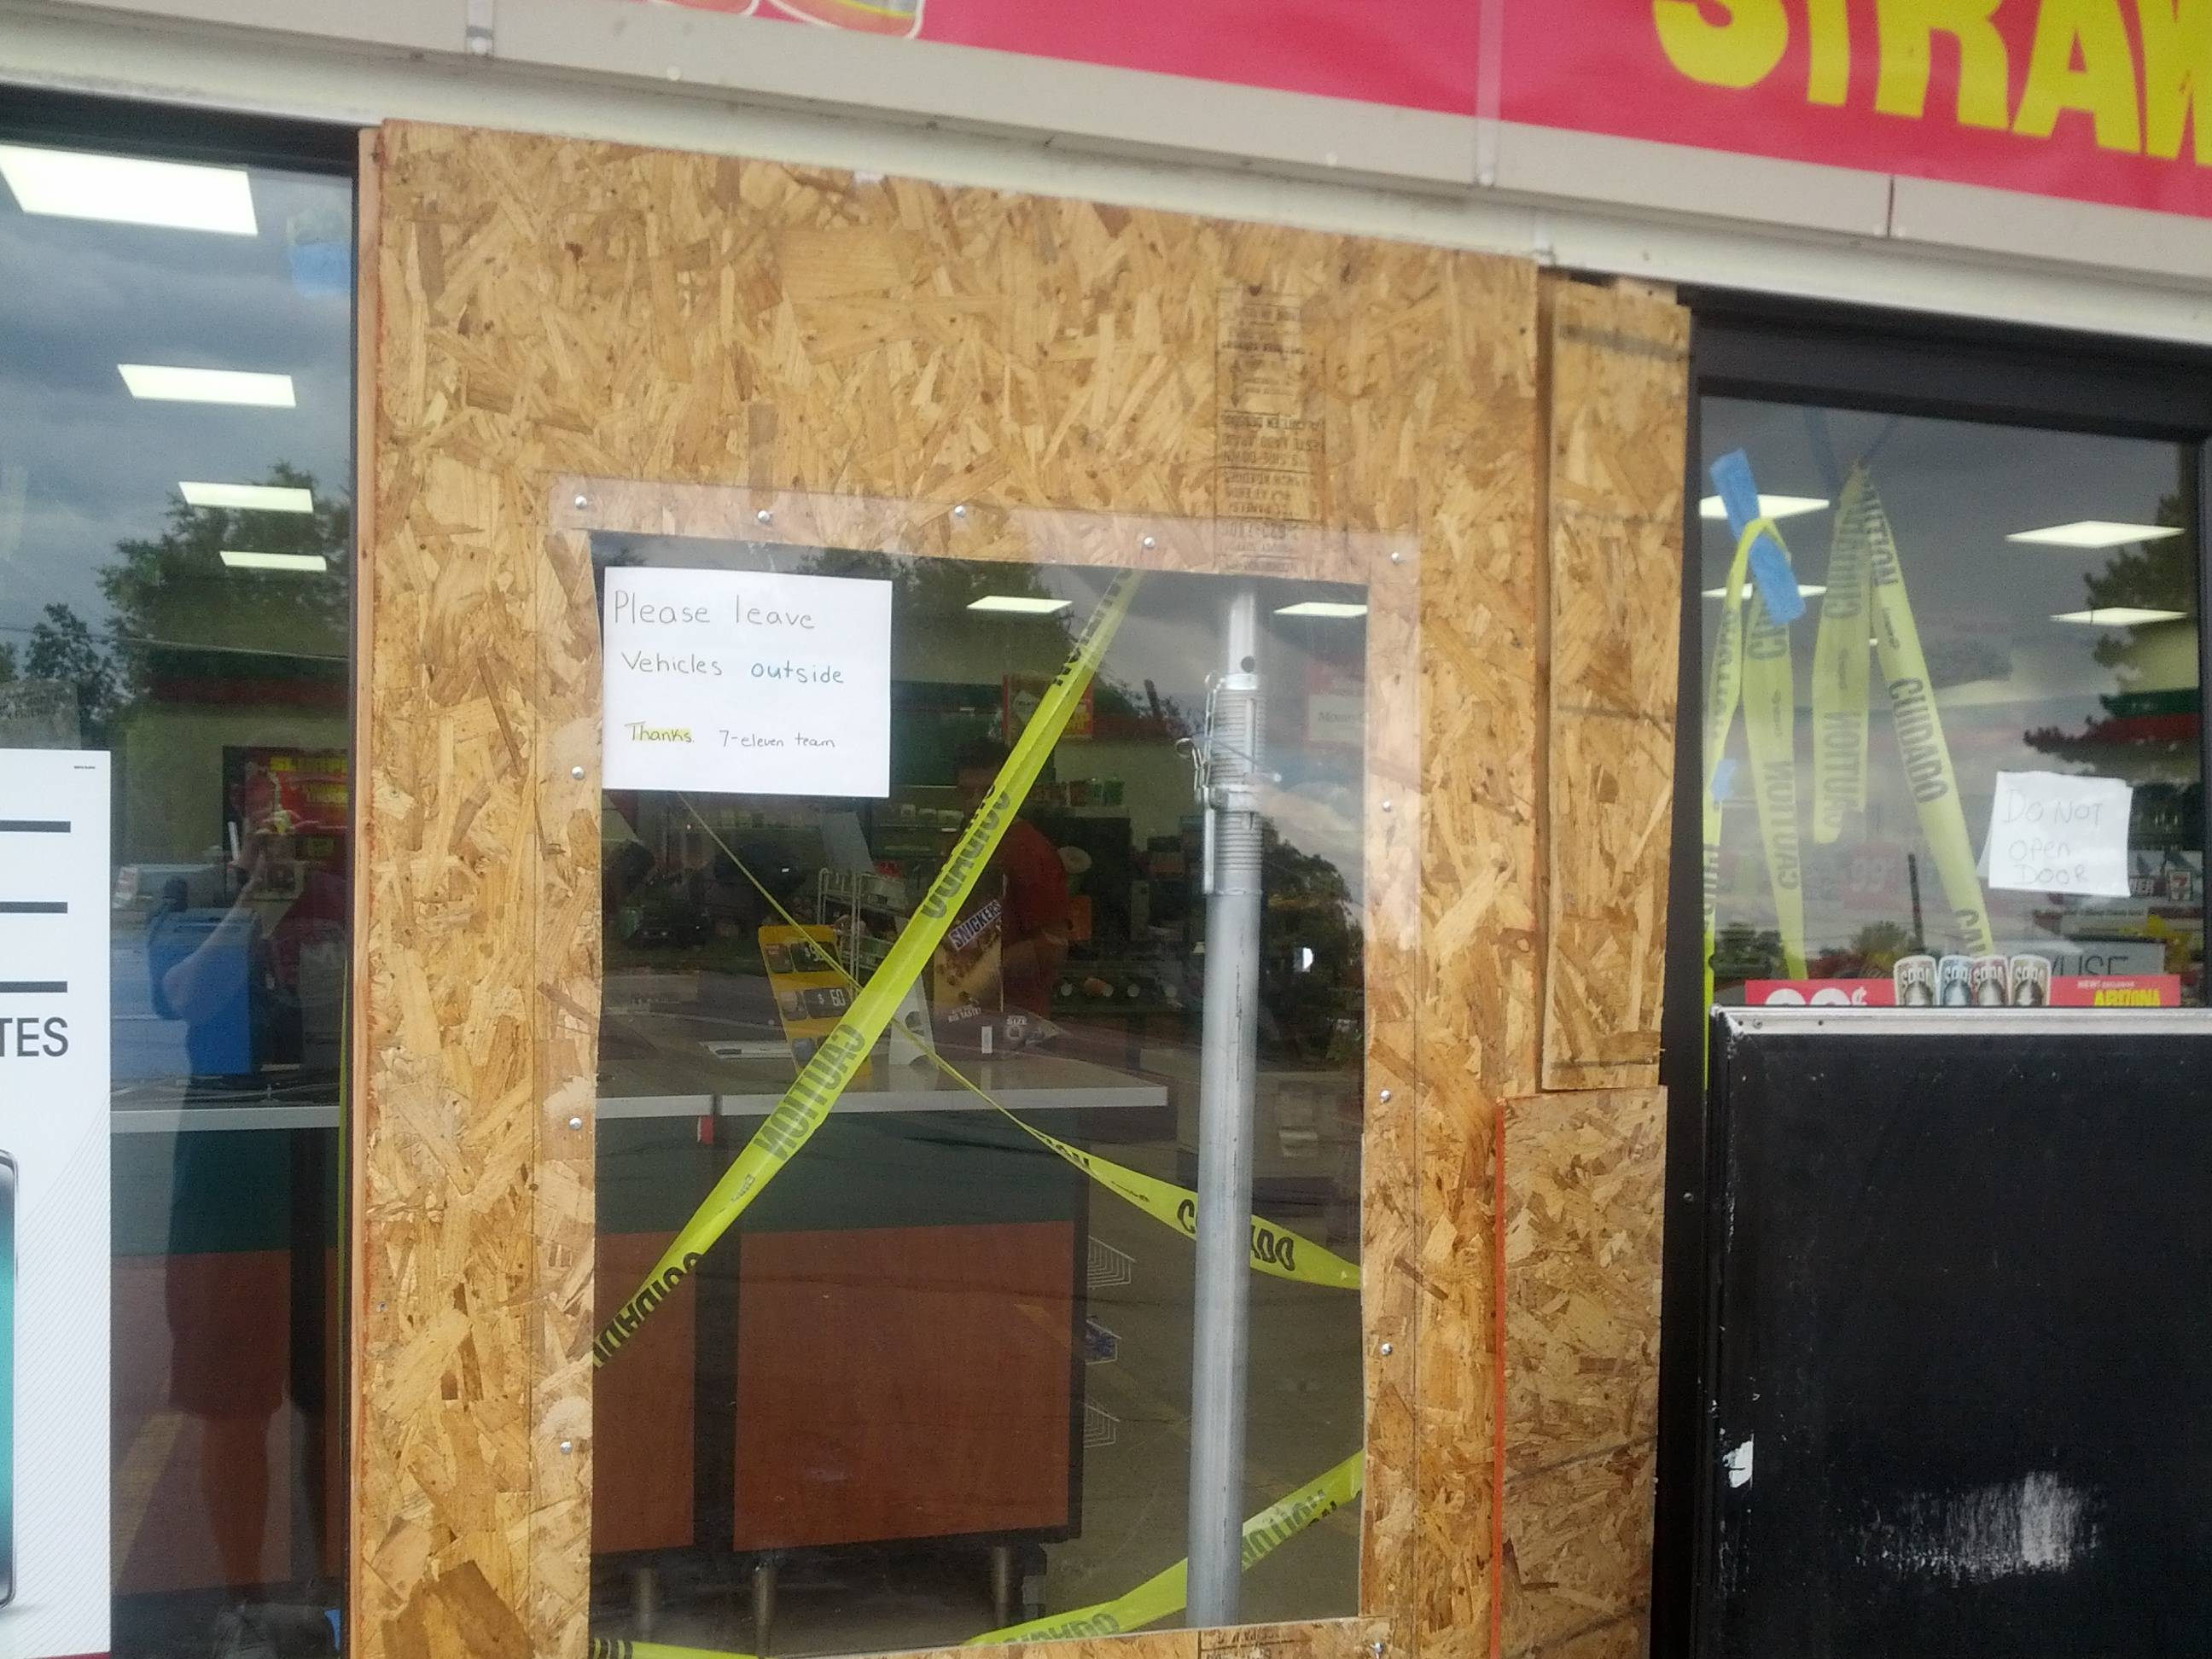 The door of 7/11 has been replaced by plaster and is being repaired because a car drove through it. A paper says please leave cars outside.